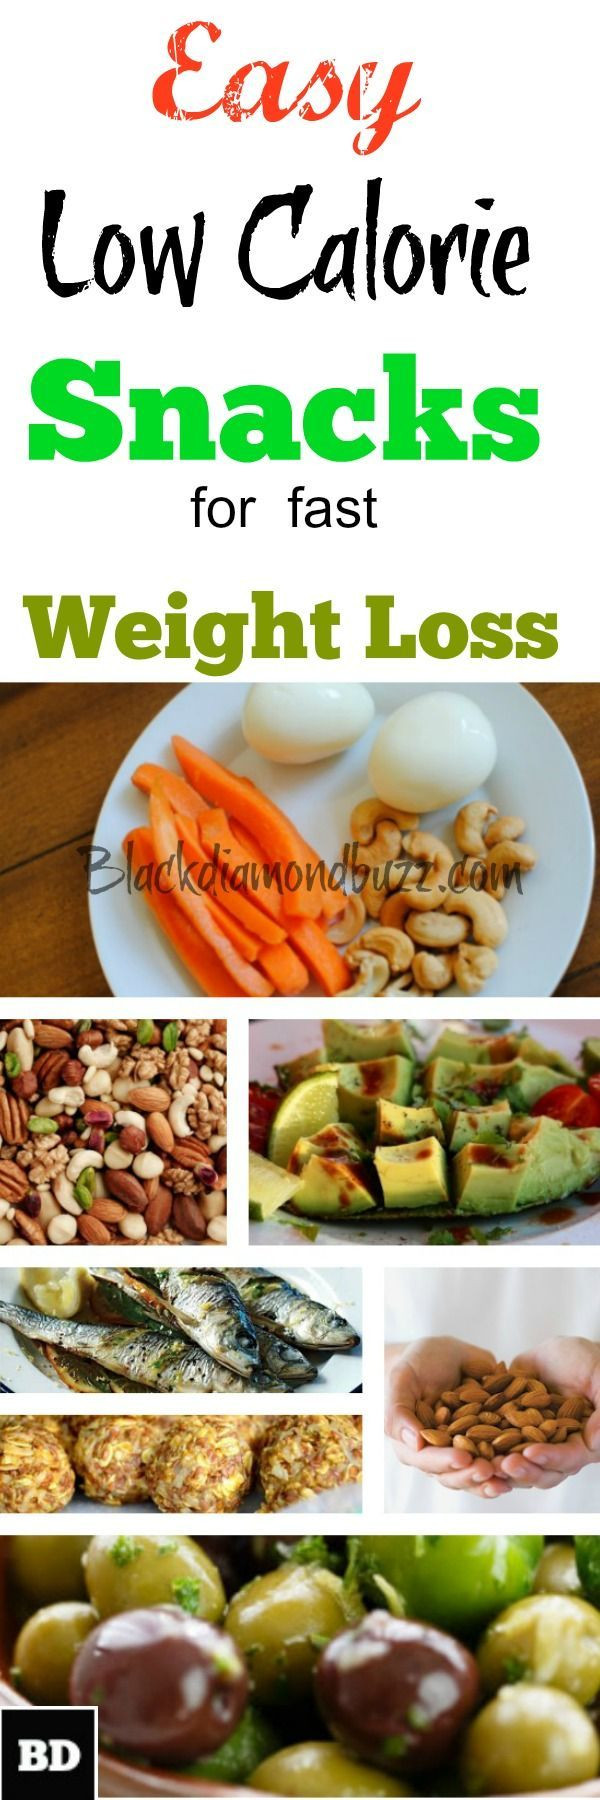 Healthy Low Calorie Snacks For Weight Loss  Best 25 Weight loss snacks ideas on Pinterest